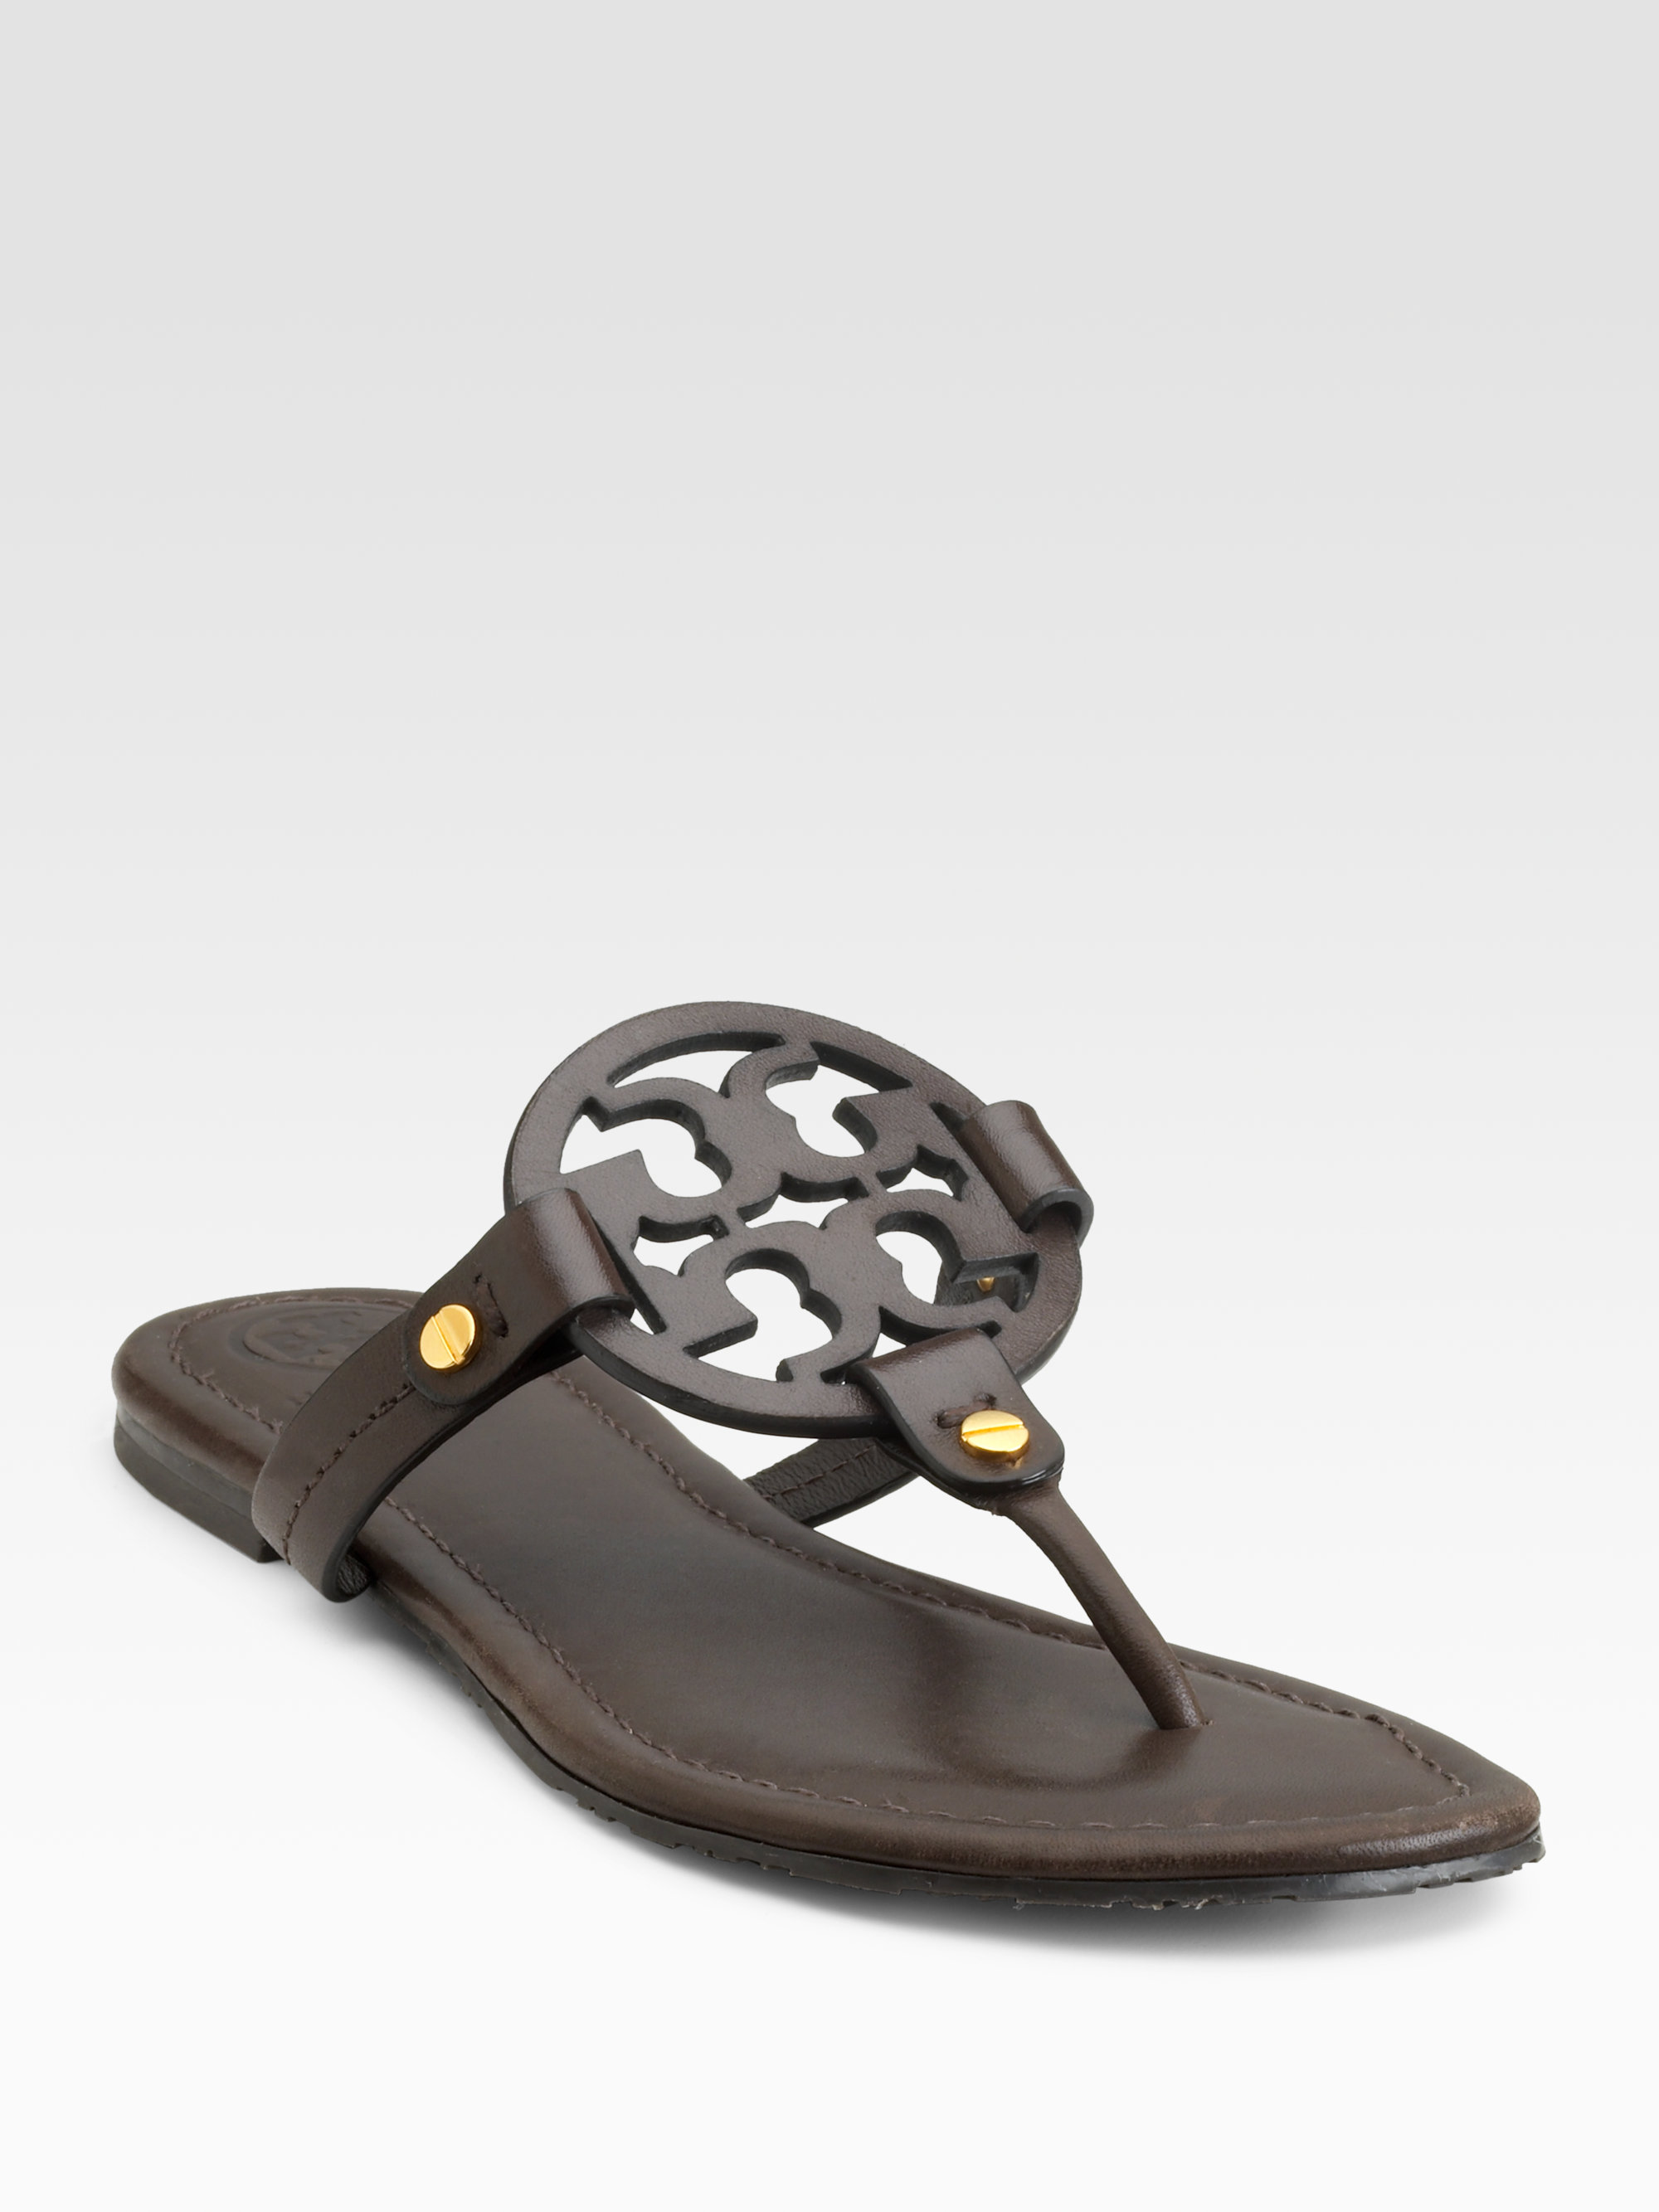 c67e5068573 Lyst - Tory Burch Miller Thong Sandals in Brown